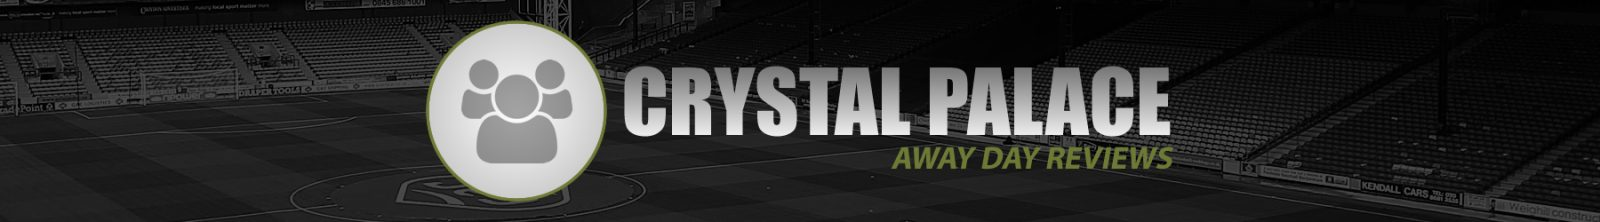 Review Crystal Palace